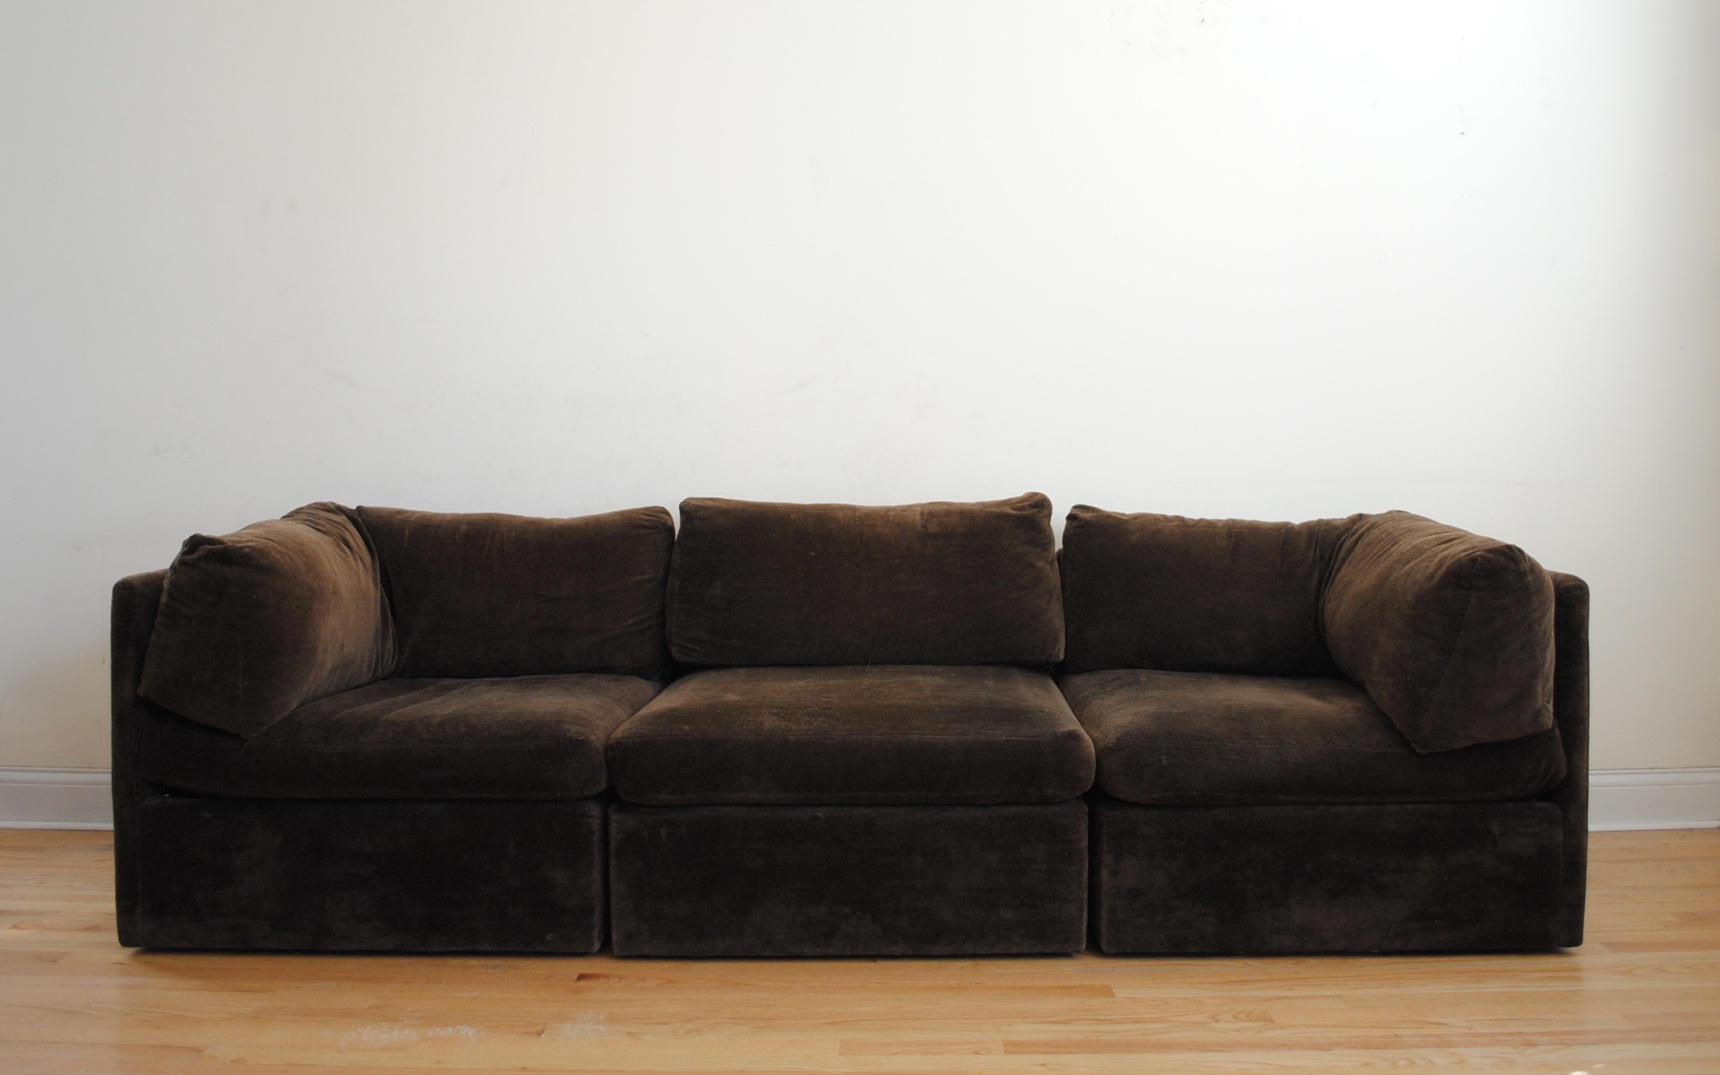 Superb Milo Baughman Sofa